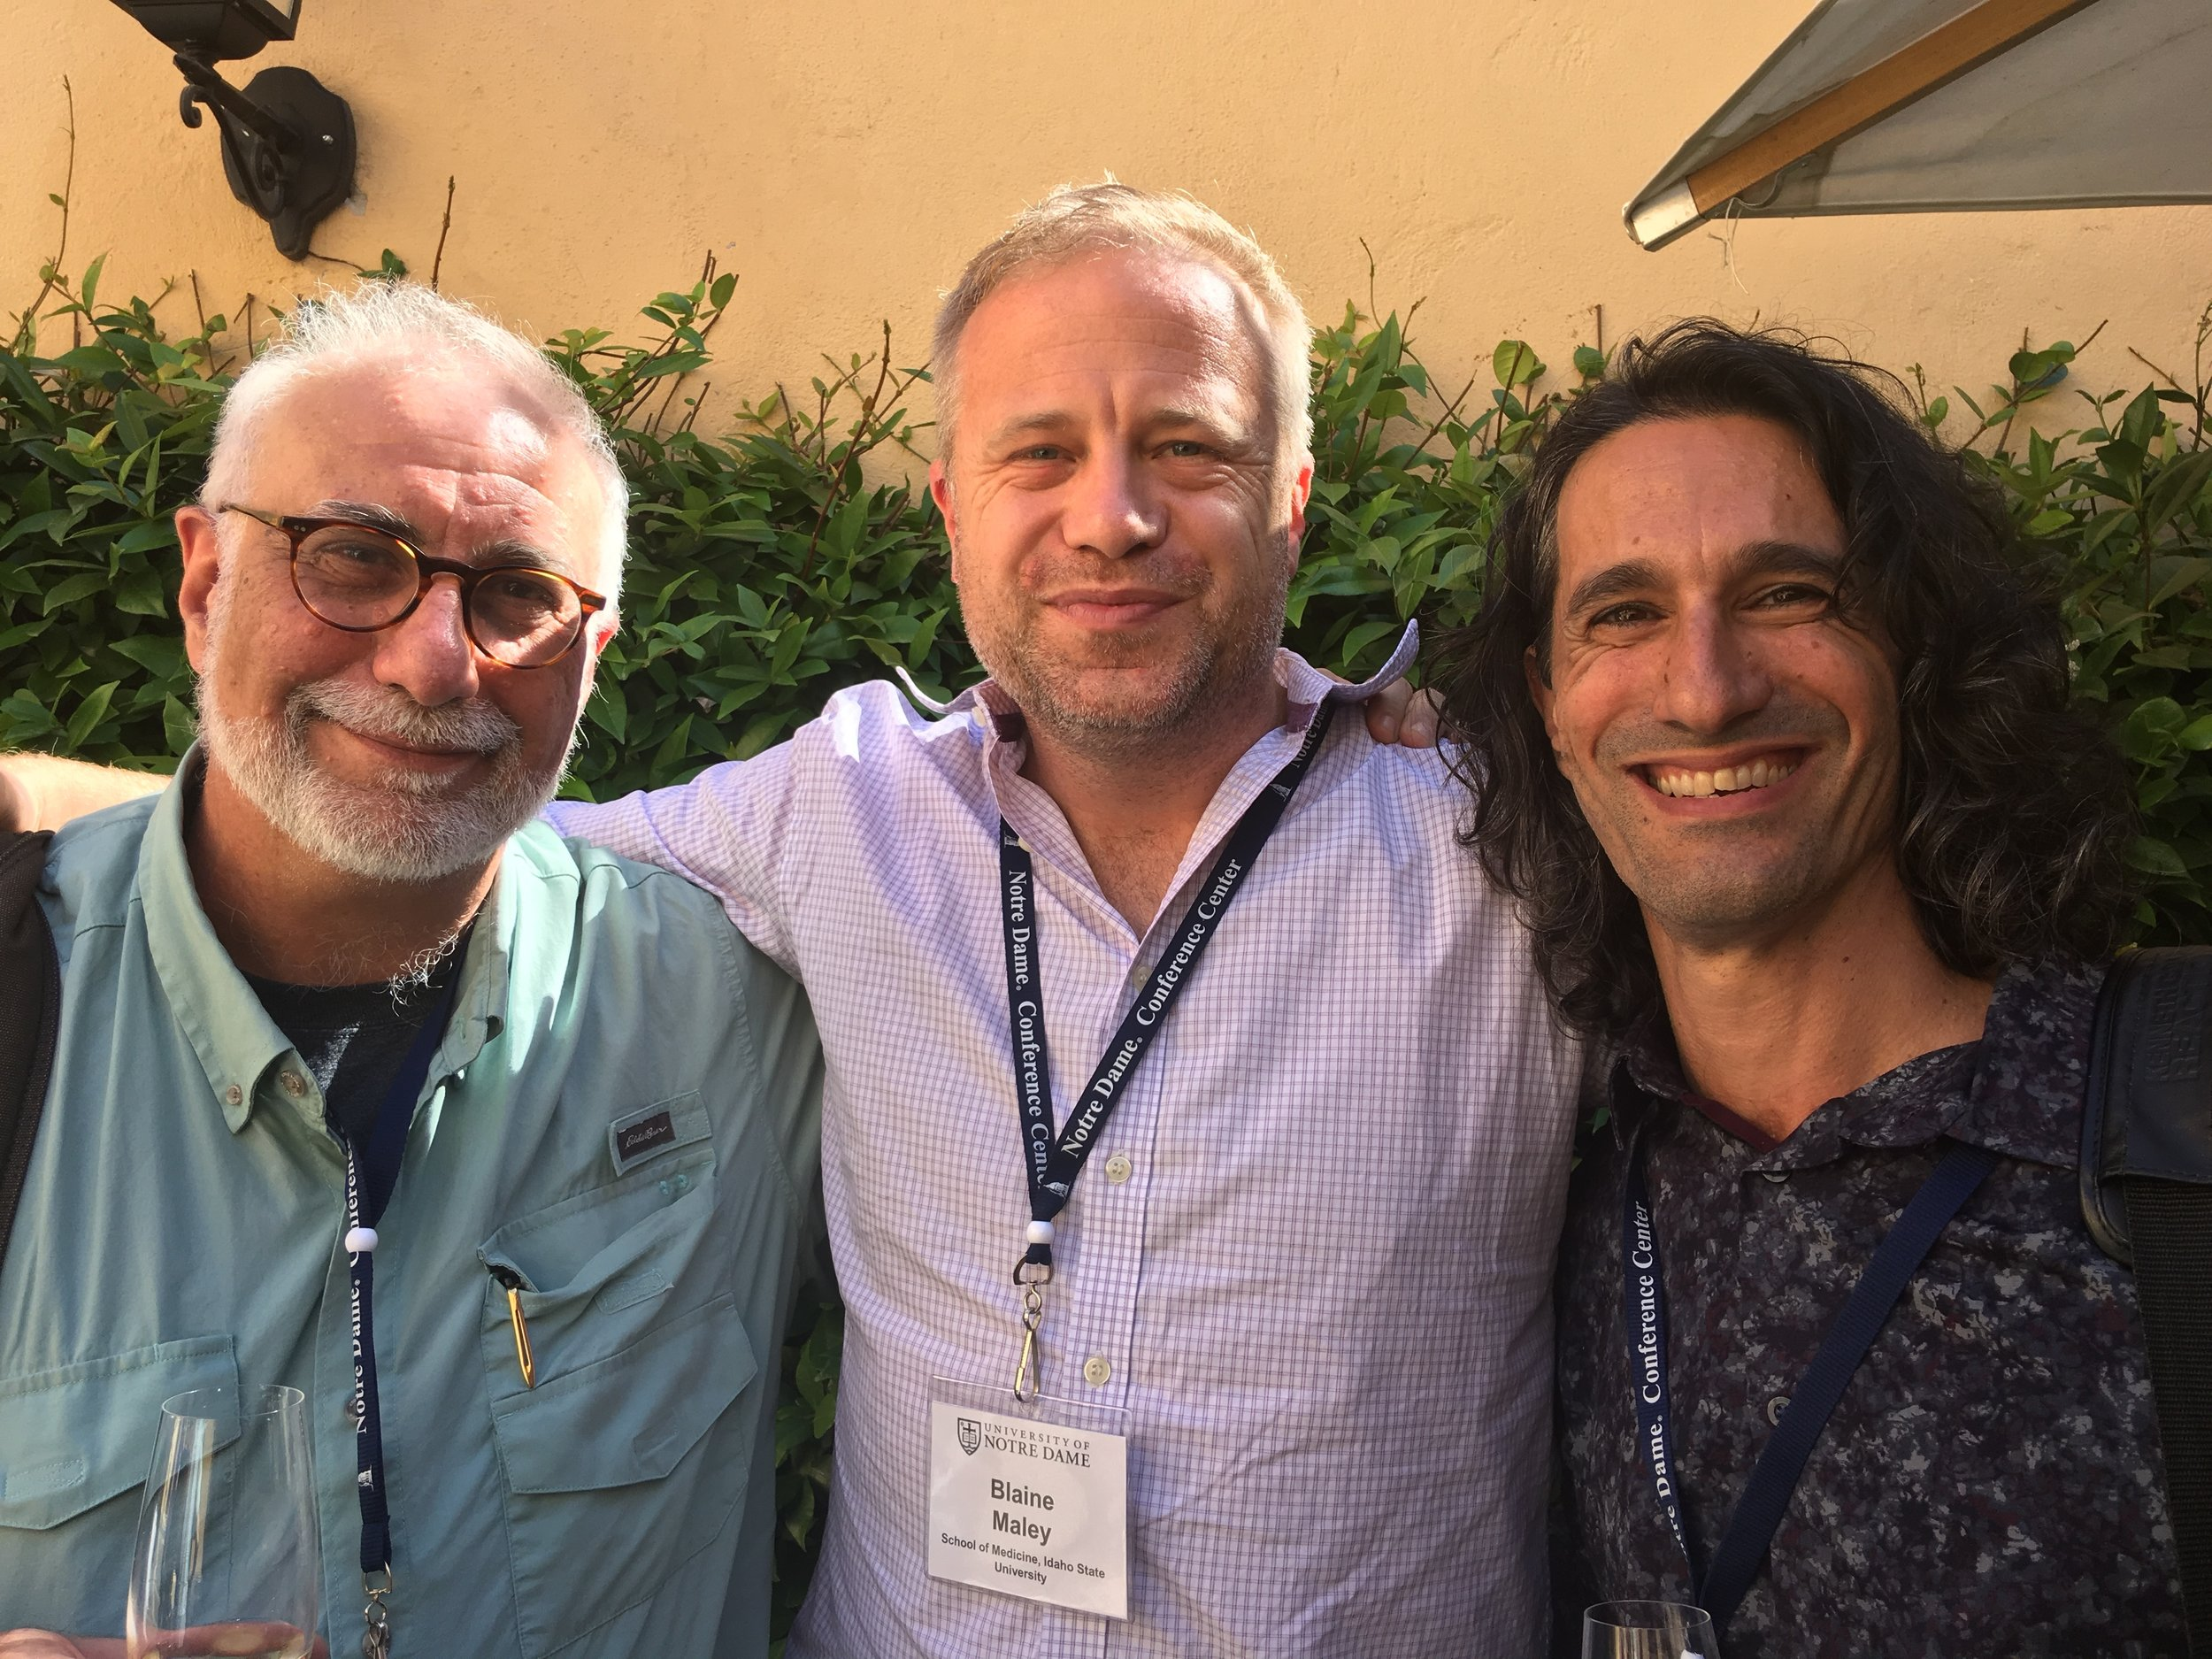 Dr. Blaine Maley (center) alongside his colleagues at the conference in Rome, Italy.